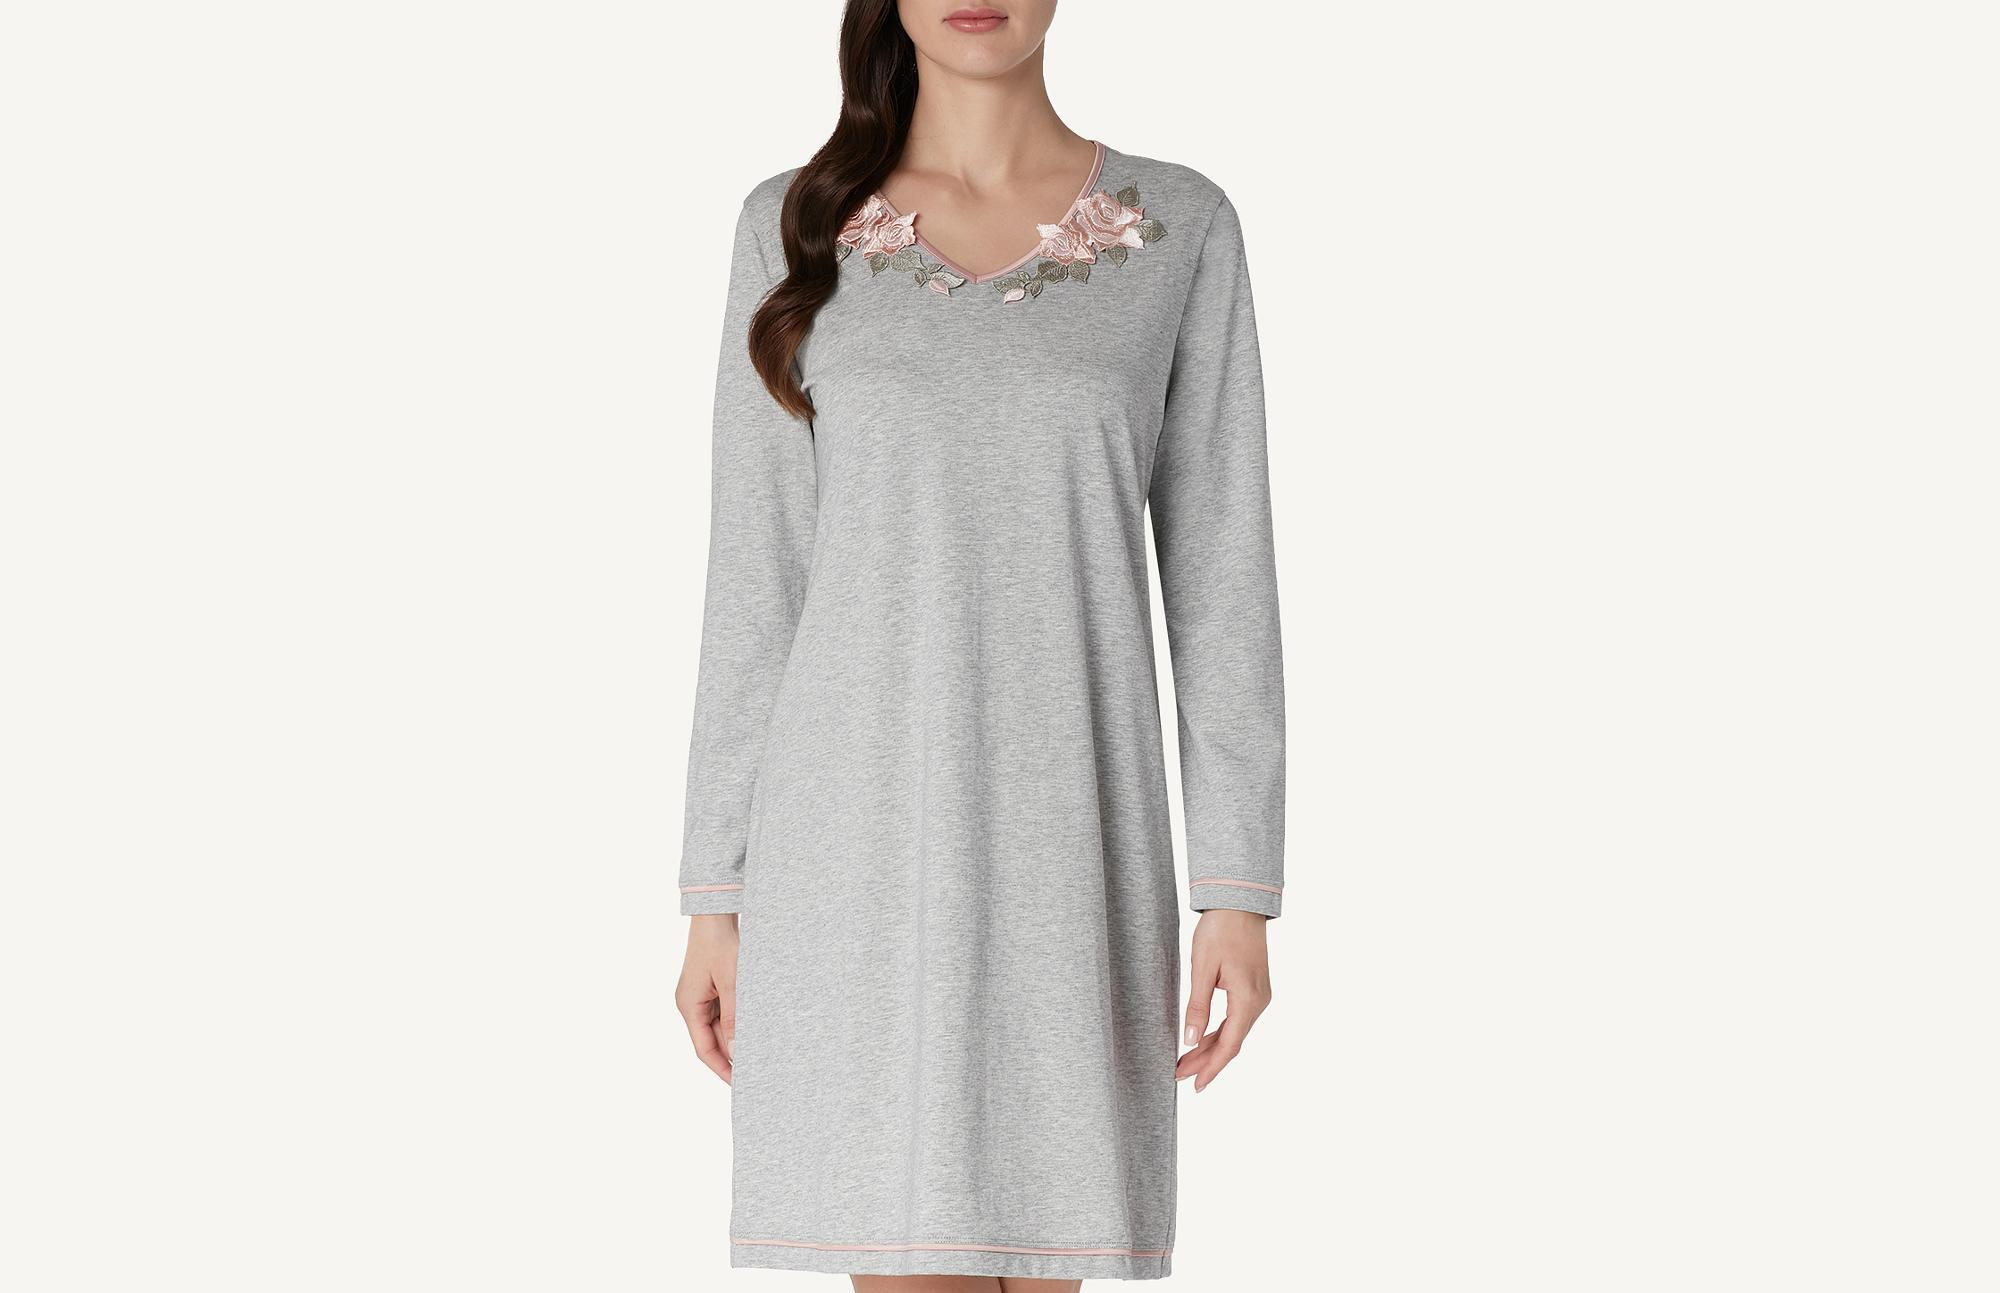 Lace & Roses Supima Cotton nightgown - Intimissimi